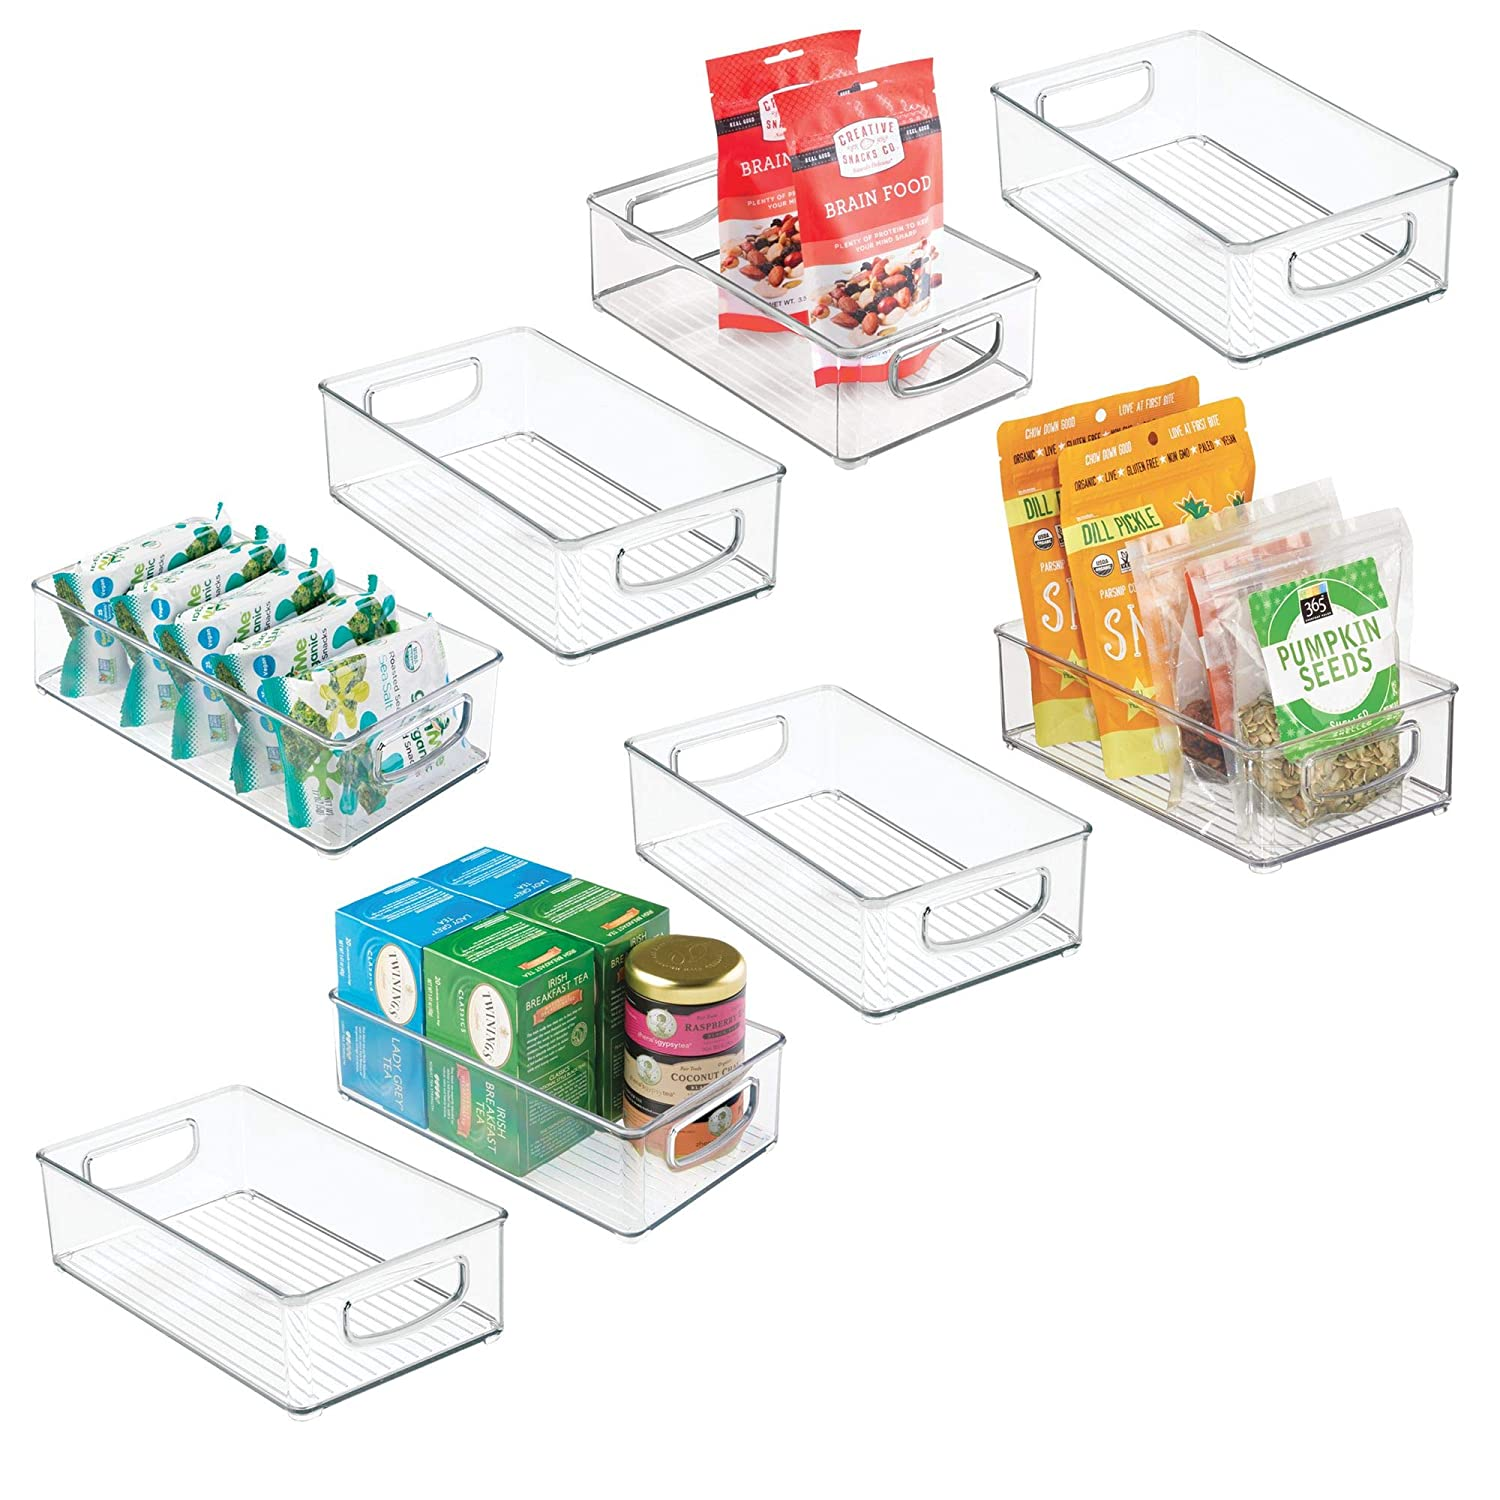 mDesign Stackable Plastic Kitchen Pantry Cabinet, Refrigerator or Freezer Food Storage Bin with Handles and Lid – Organizer for Fruit, Yogurt, Snacks, Pasta – BPA Free, 6″ Wide, 8 Pack – Clear Reviews